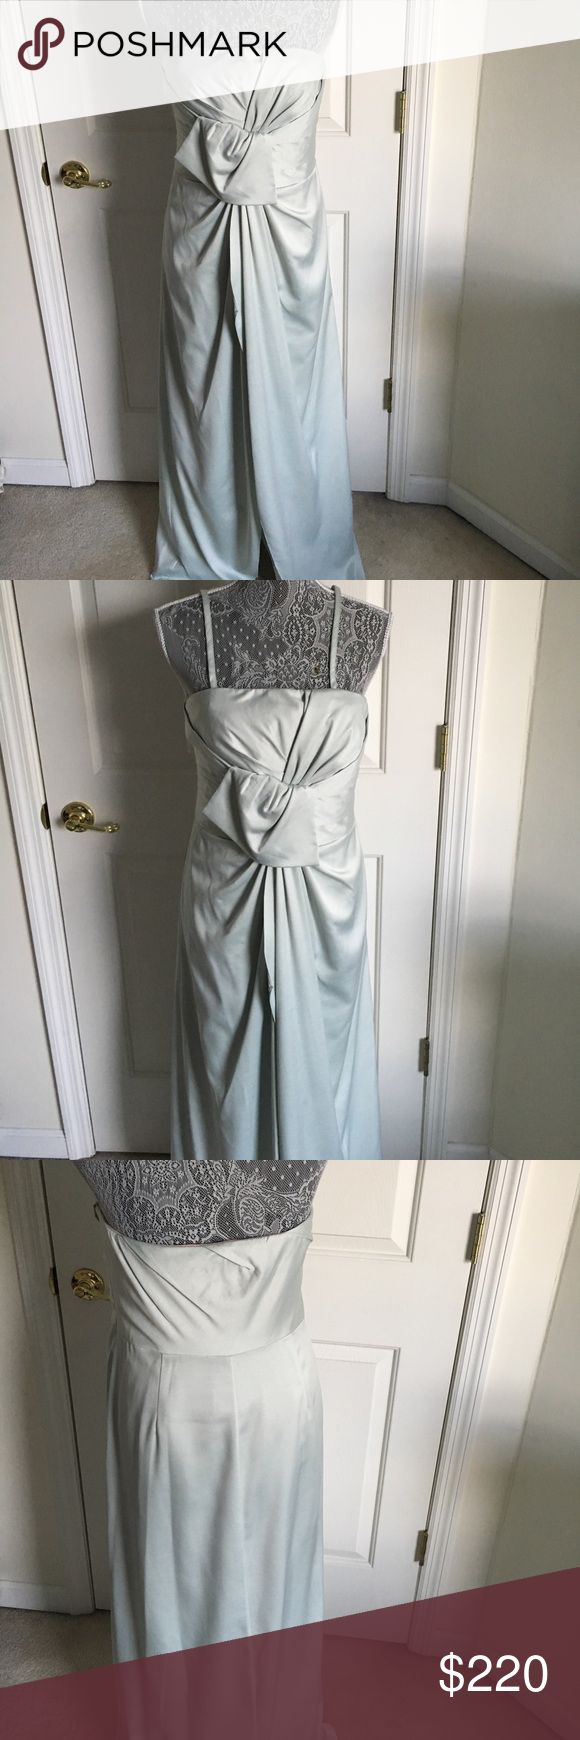 Mint Coast dress with blush pink lining Perfect for weddings. Worn once. Great condition. I will send you pink shoes size 6.5 that go with it as a gift 🎁 but they were suede so you will need to clean them. You can also purchase a necklace that goes with this dress. Look lower in my closet for same brand. I can give you bundle discount. coast Dresses Wedding